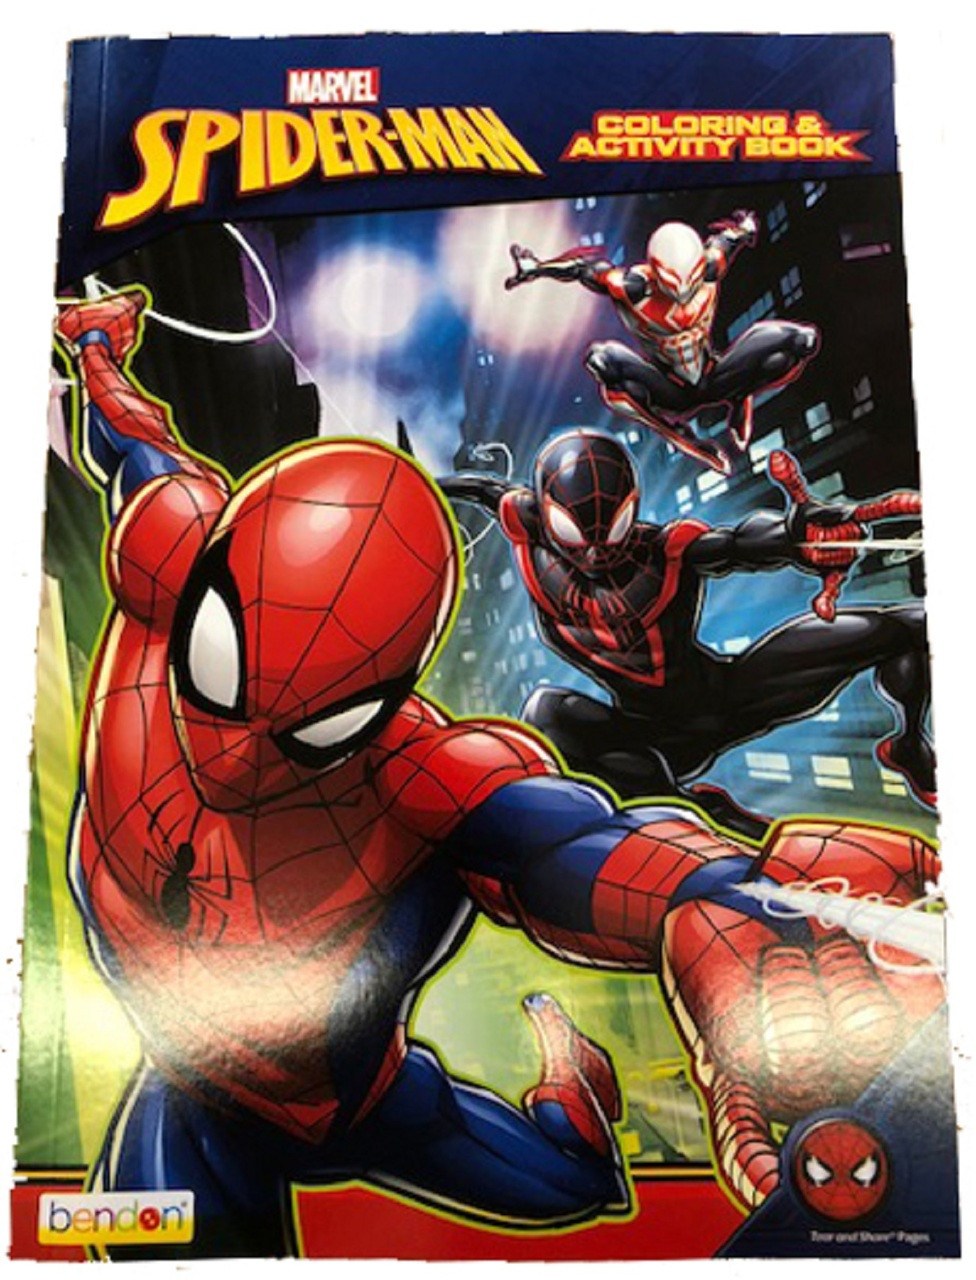 Spiderman Coloring and Activity Book - 128 pages